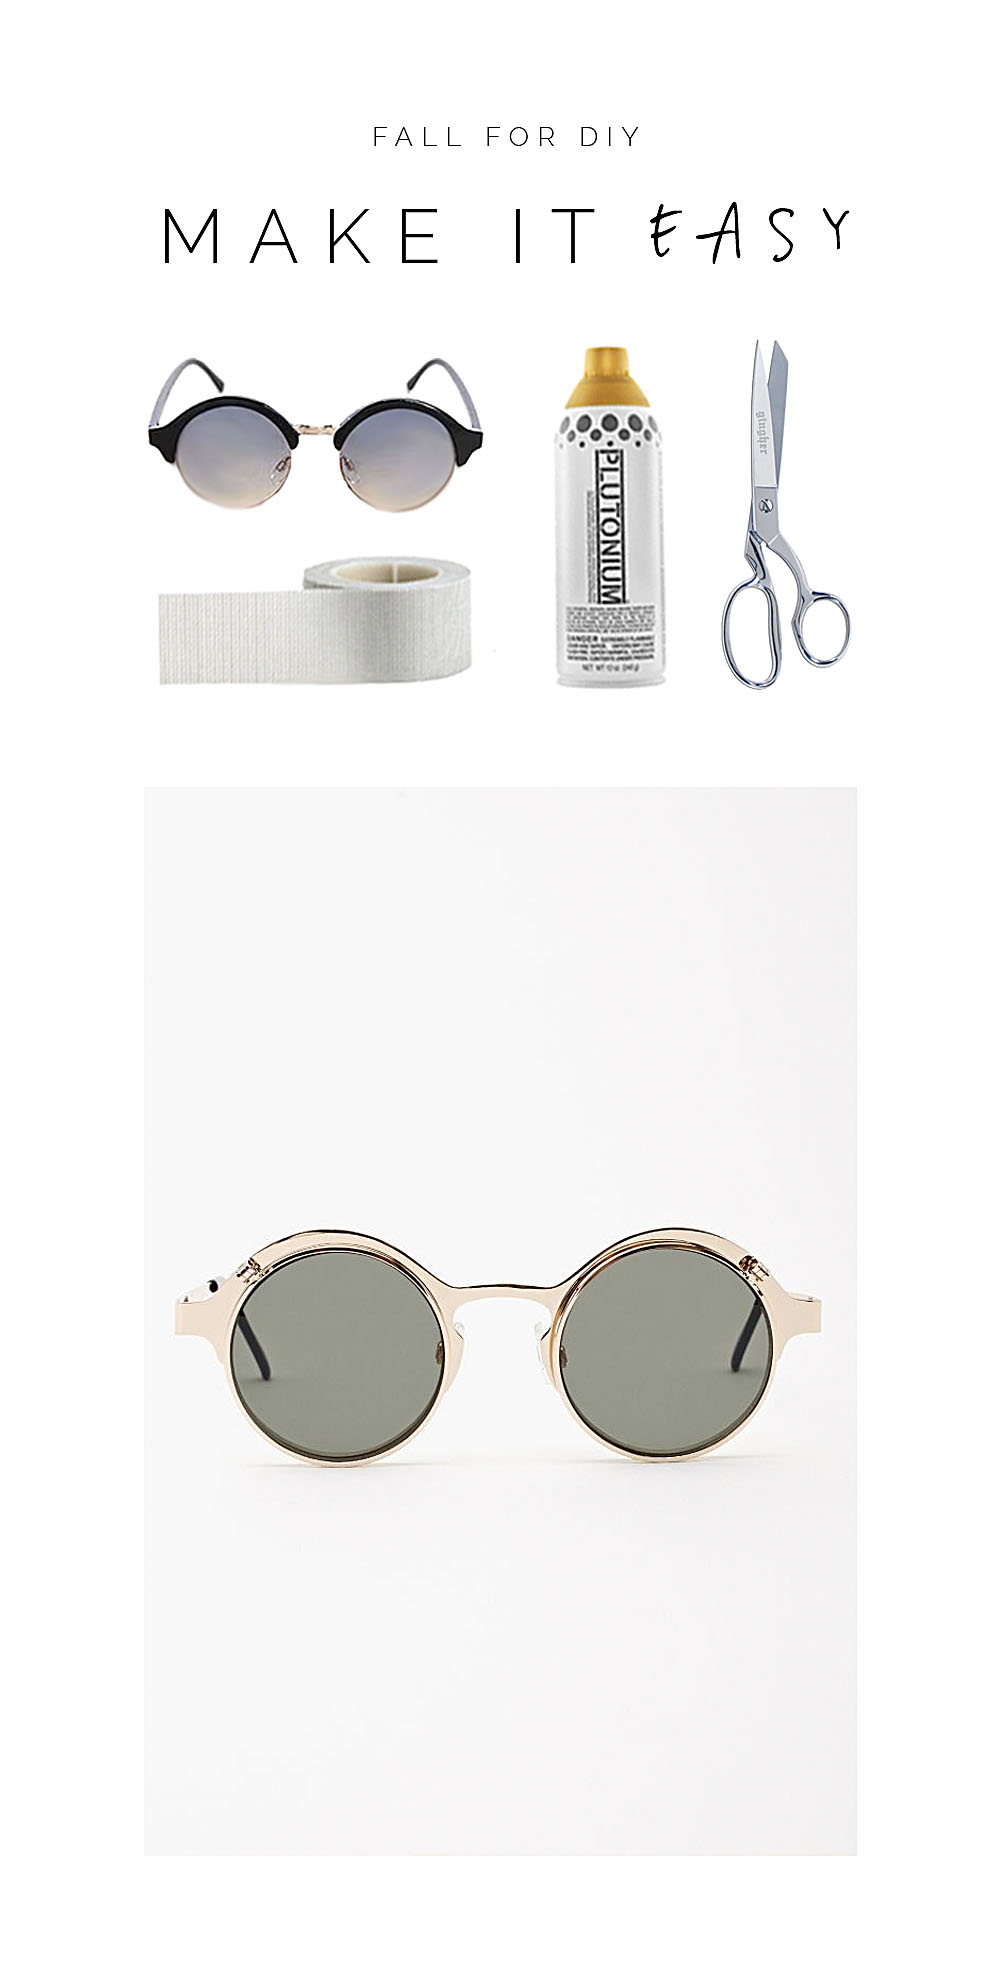 Fall For DIY Make It Easy gold rimmed sunglasses